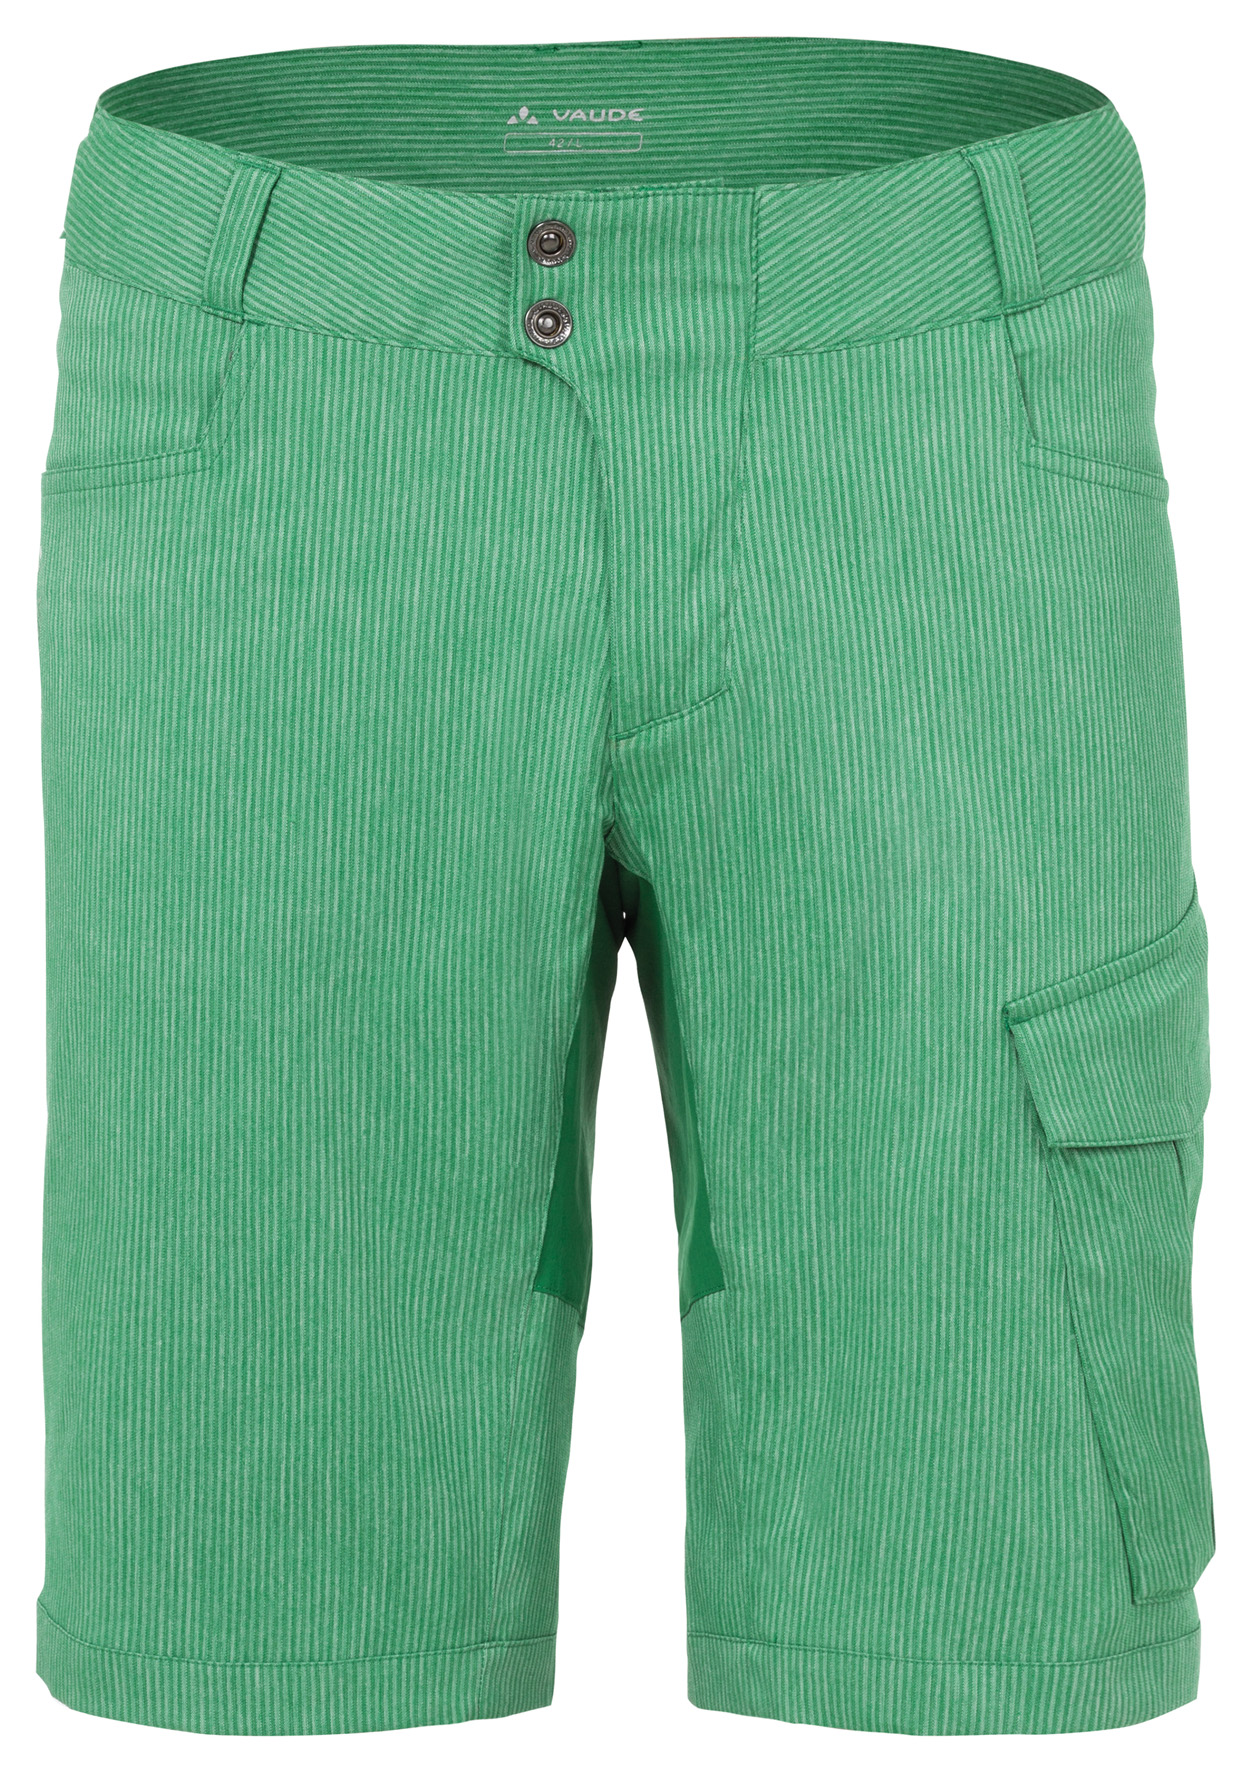 Men´s Tremalzo Shorts yucca green Größe M - schneider-sports